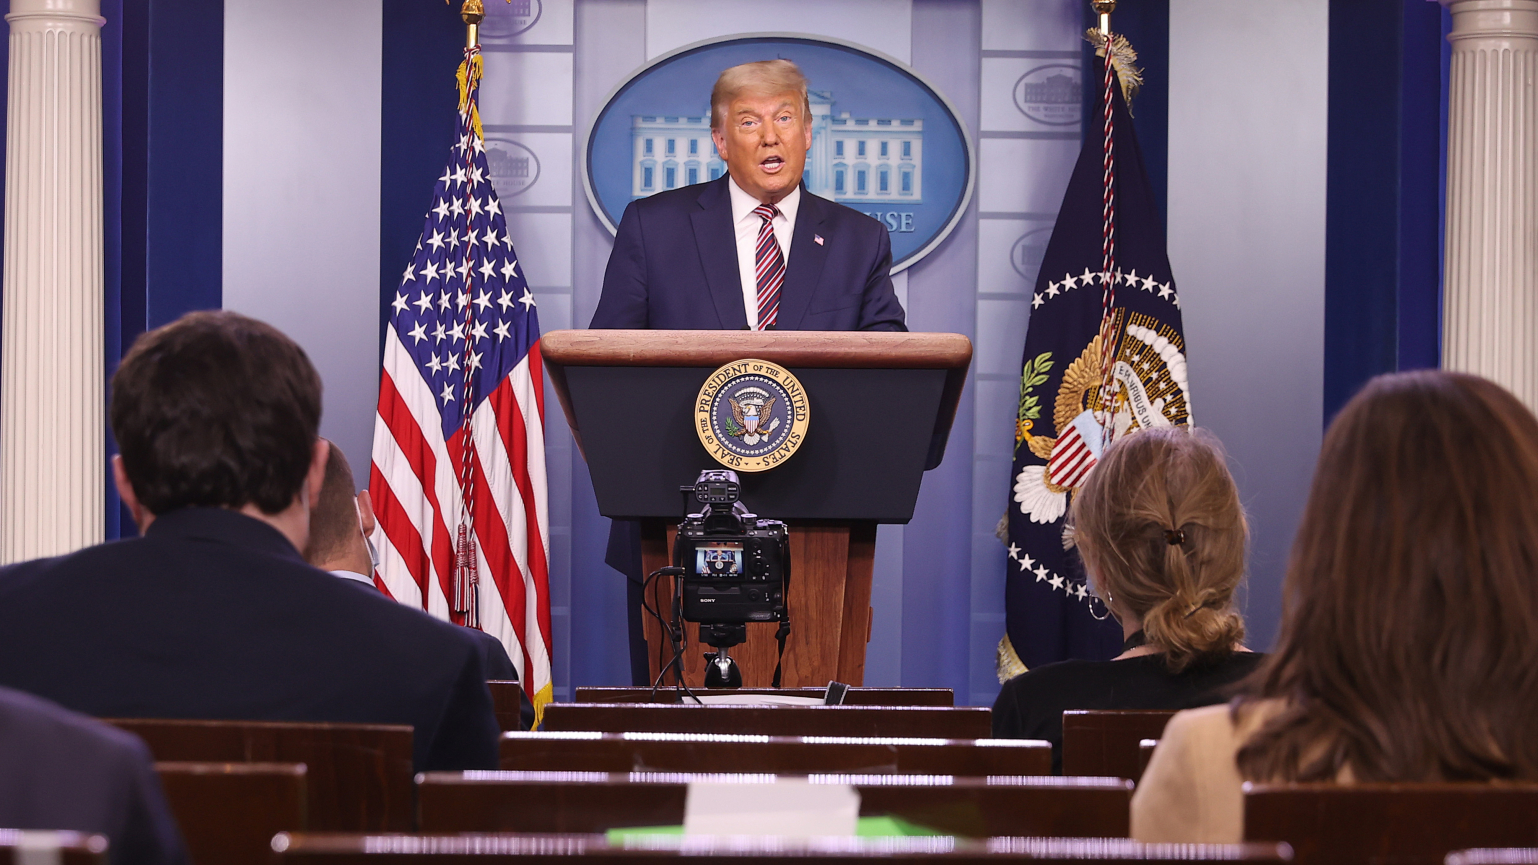 President Donald Trump speaks in the briefing room at the White House on Nov. 5, 2020. (Chip Somodevilla / Getty Images)